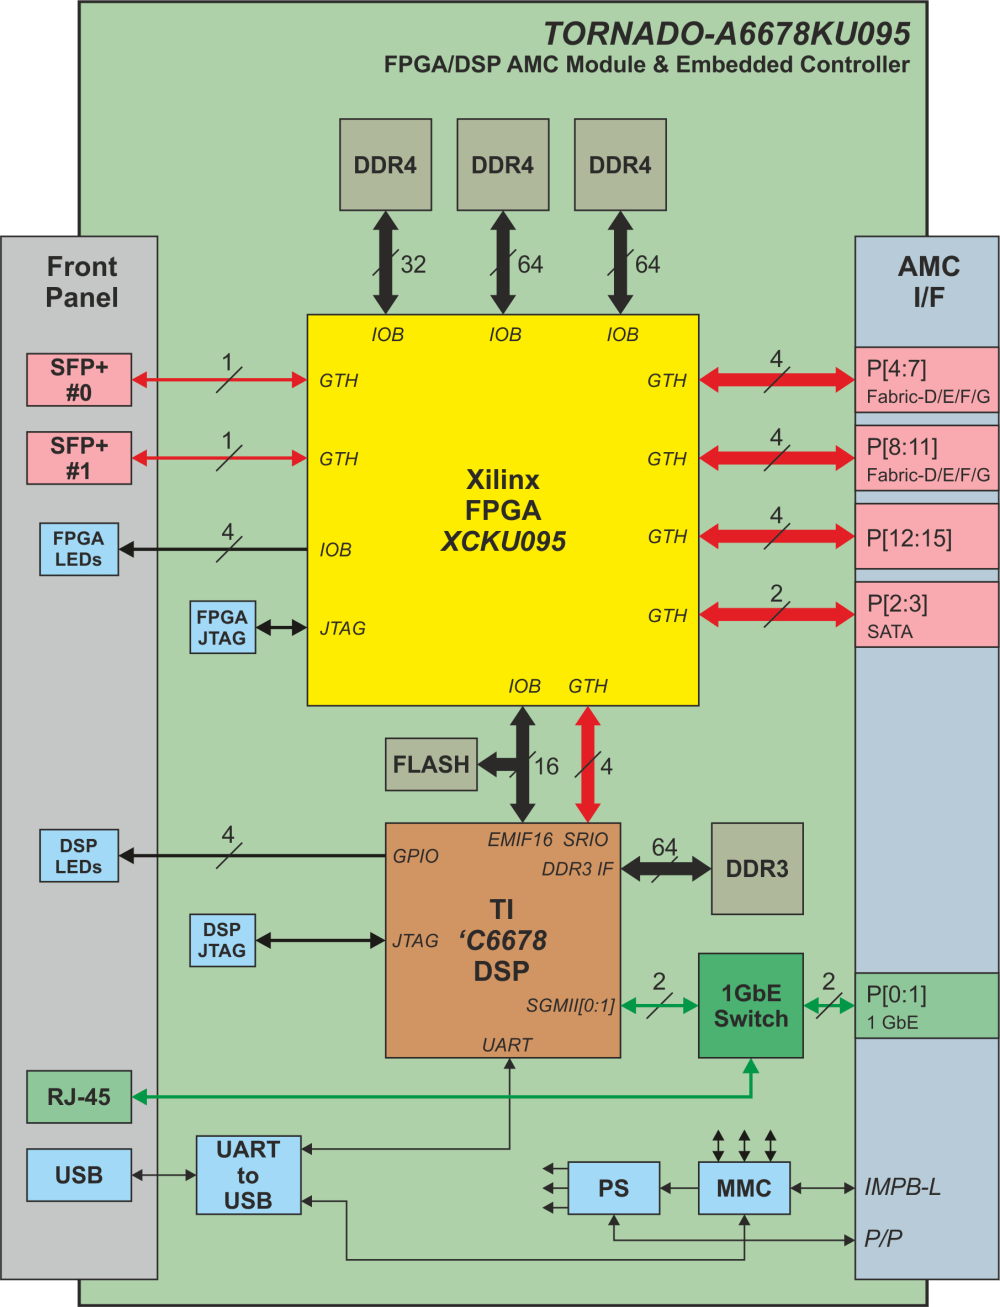 medium resolution of a6678ku block diagram for tornado a6678kuxxx amc module with dsp and kintex ultrascale fpga